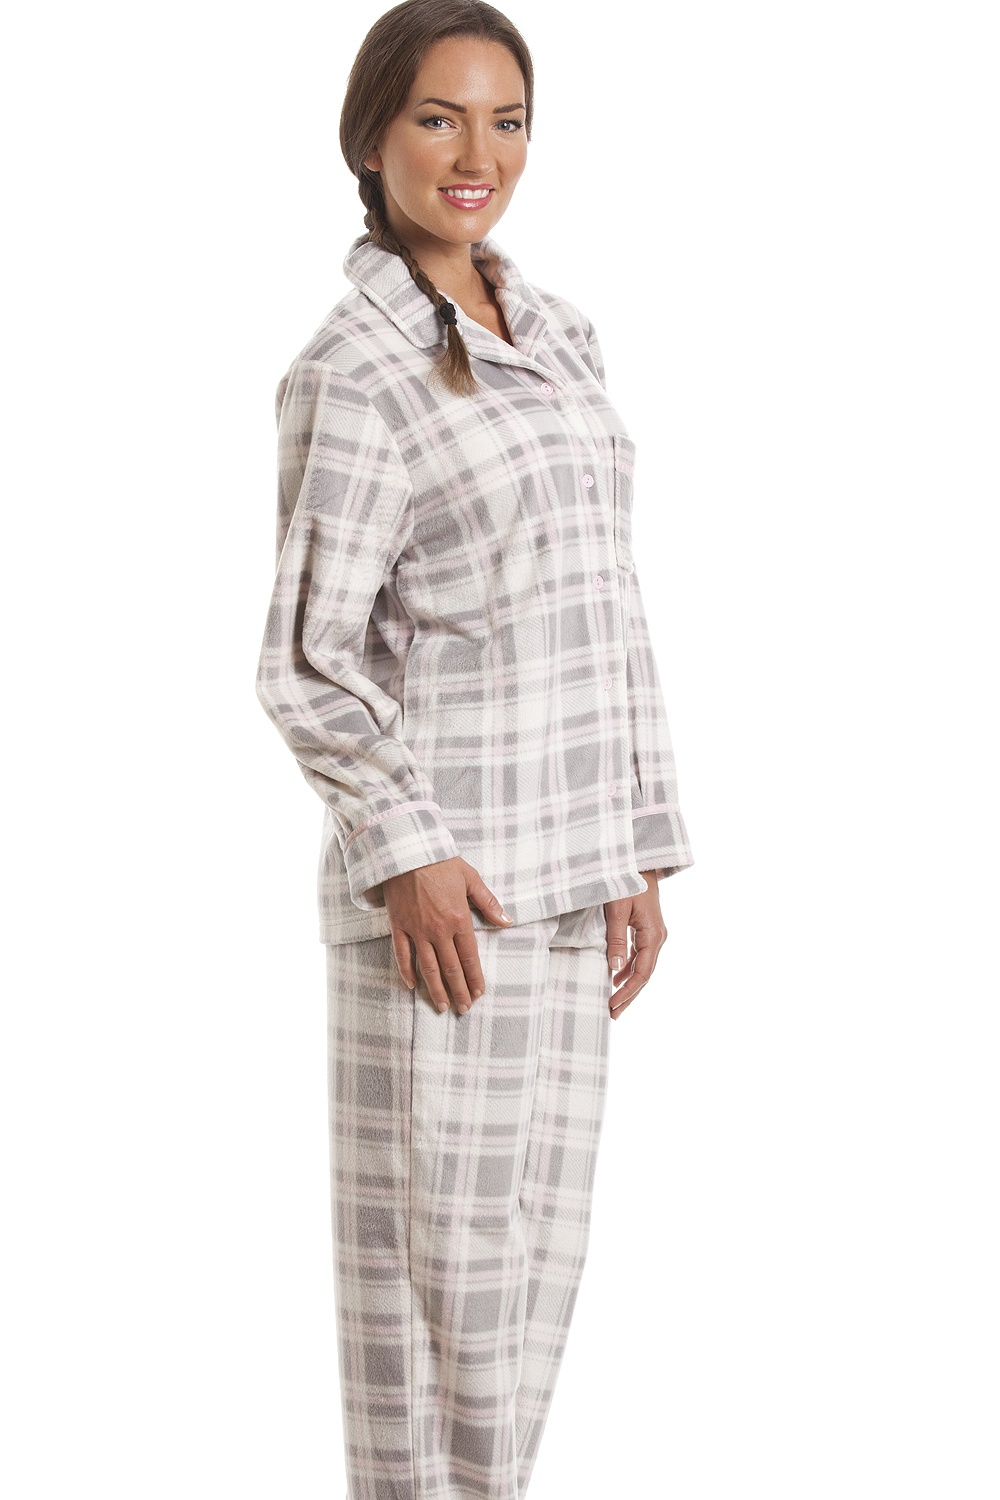 Shop the Vintage Pajama Set at rutor-org.ga and see the entire selection of Women's Lounge. Free Shipping Available.